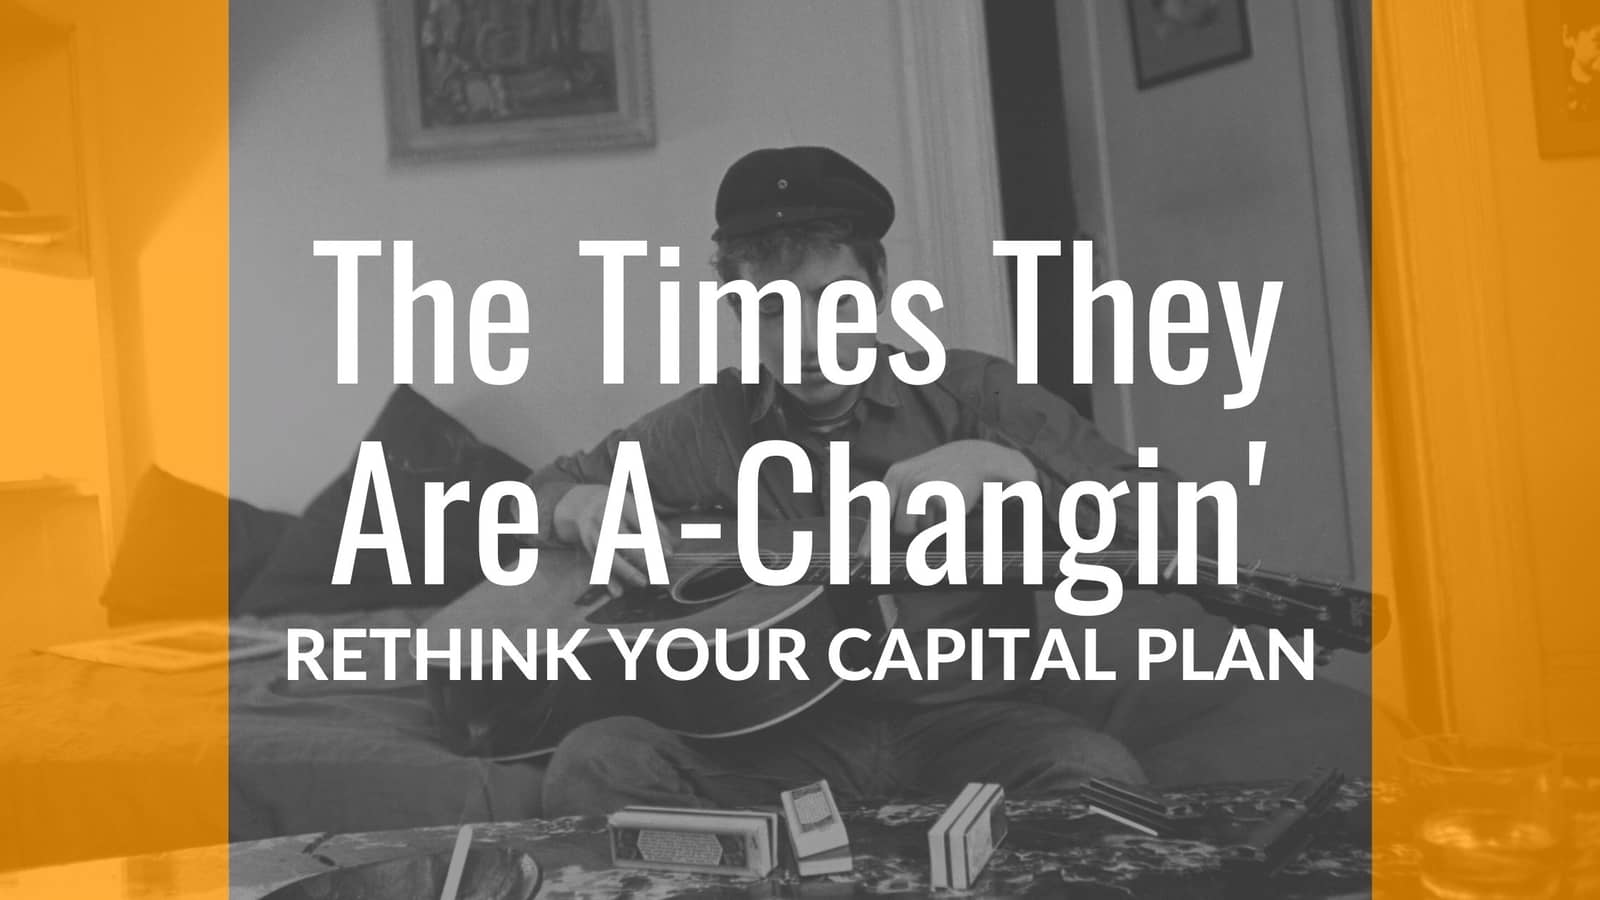 The Times They Are A-changin' – Rethink Your Capital Plan